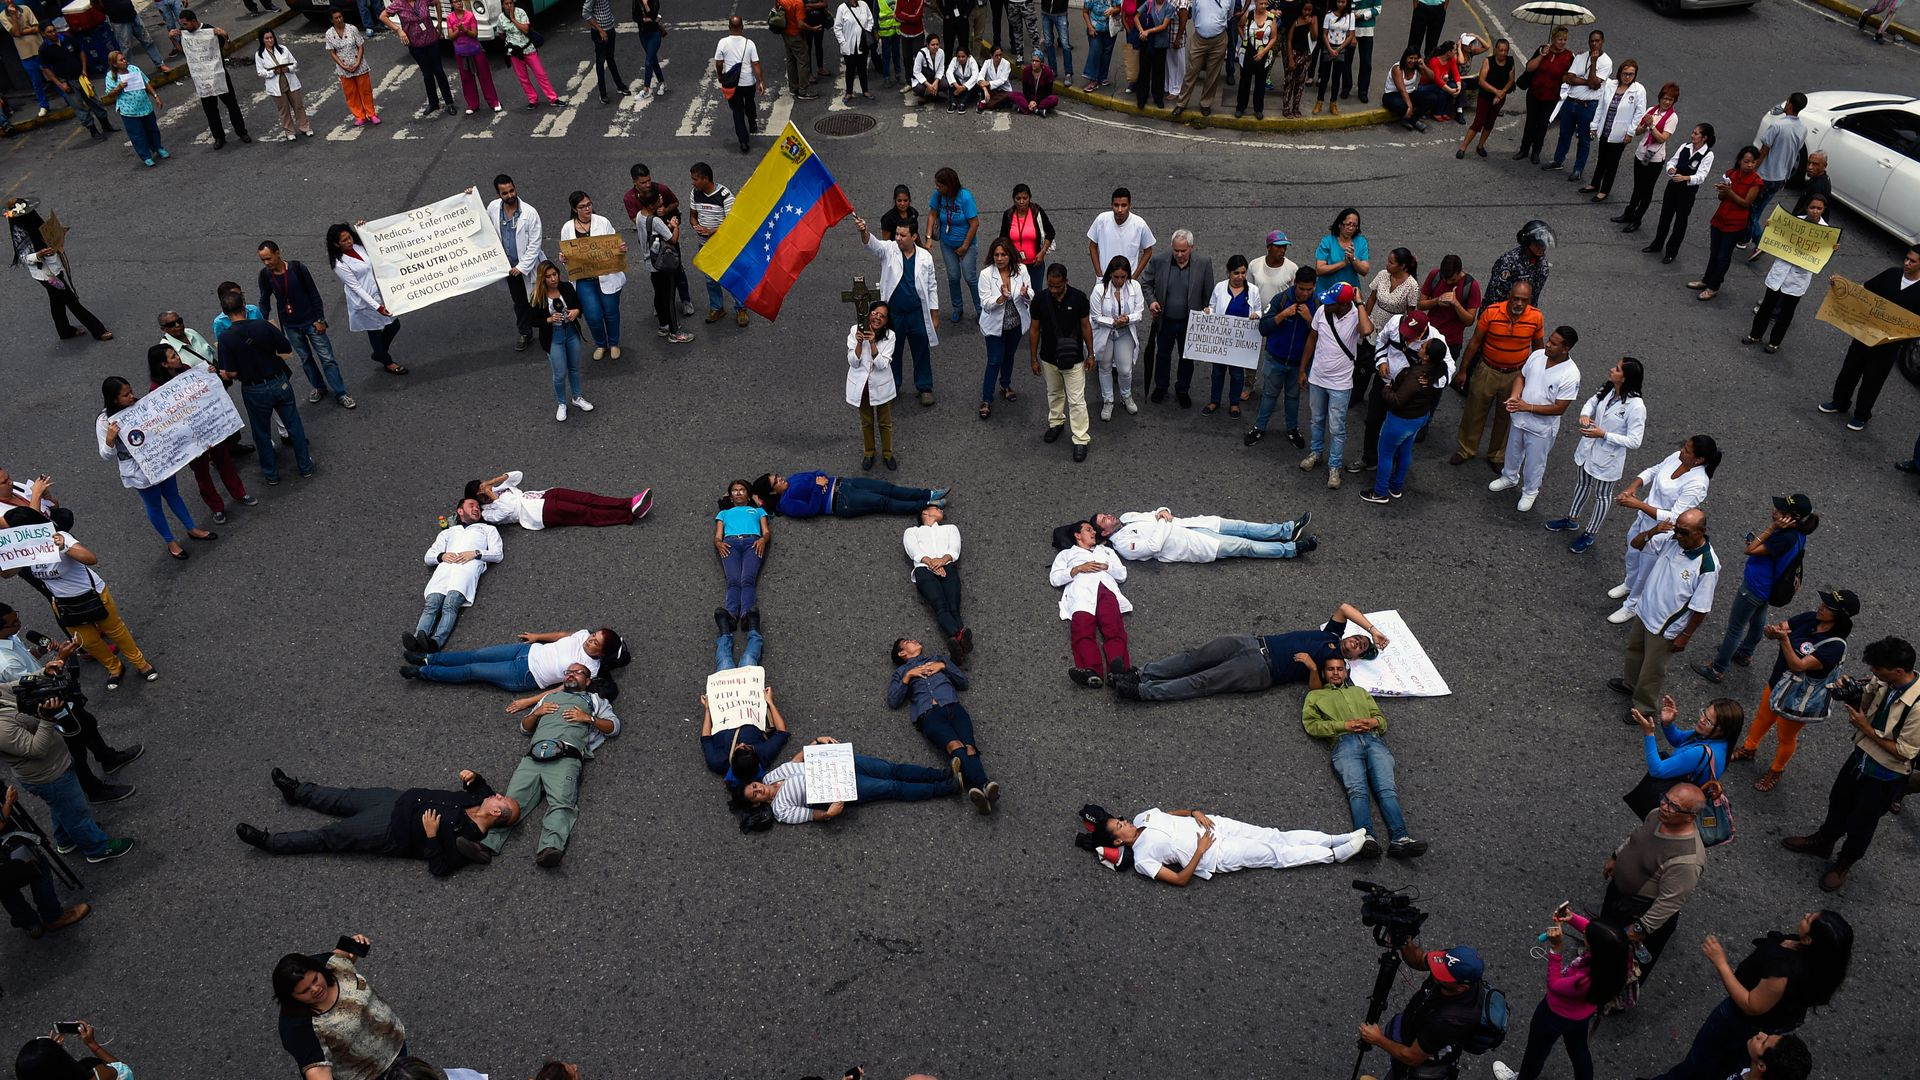 Venezuela protestors form SOS with their bodies